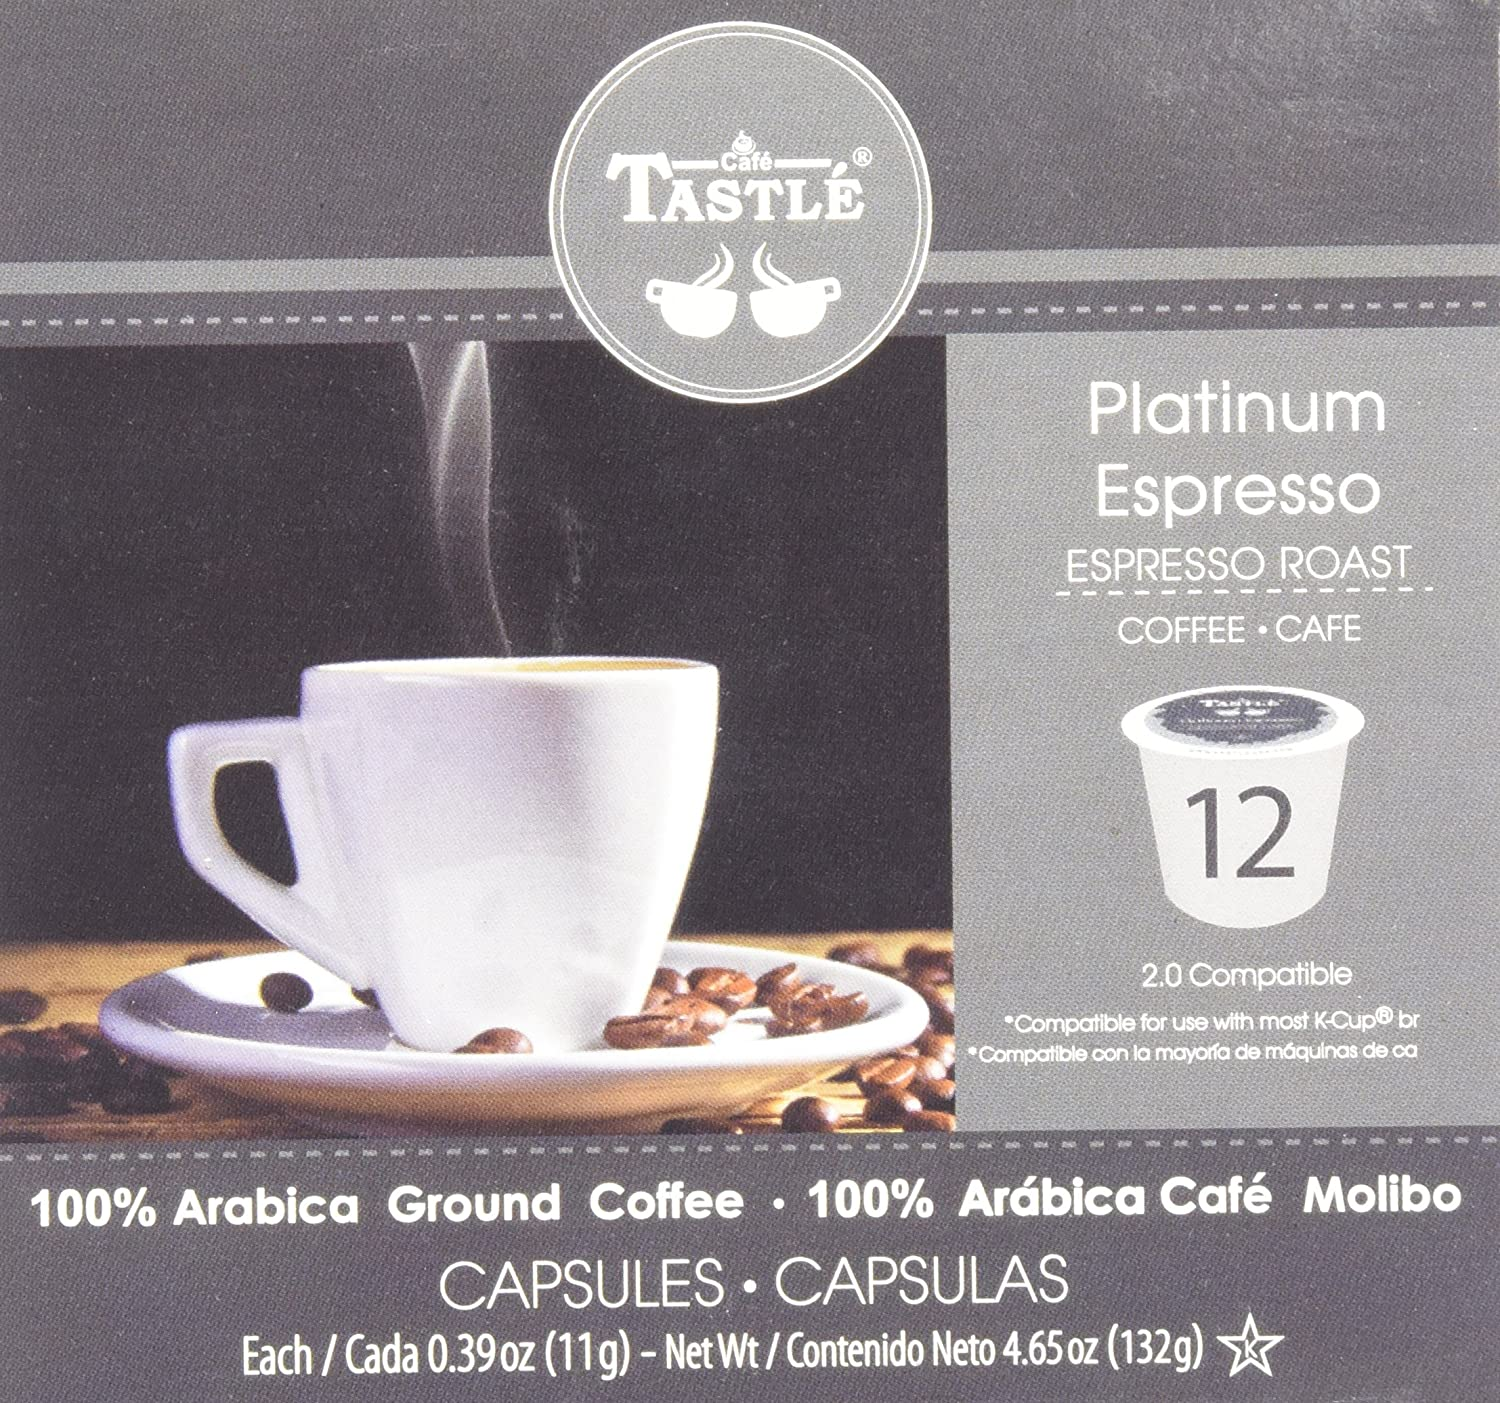 Cafe Tastlé Platinum Espresso Roast Single Serve Coffee, 12 Count (Pack of 6): Amazon.com: Grocery & Gourmet Food